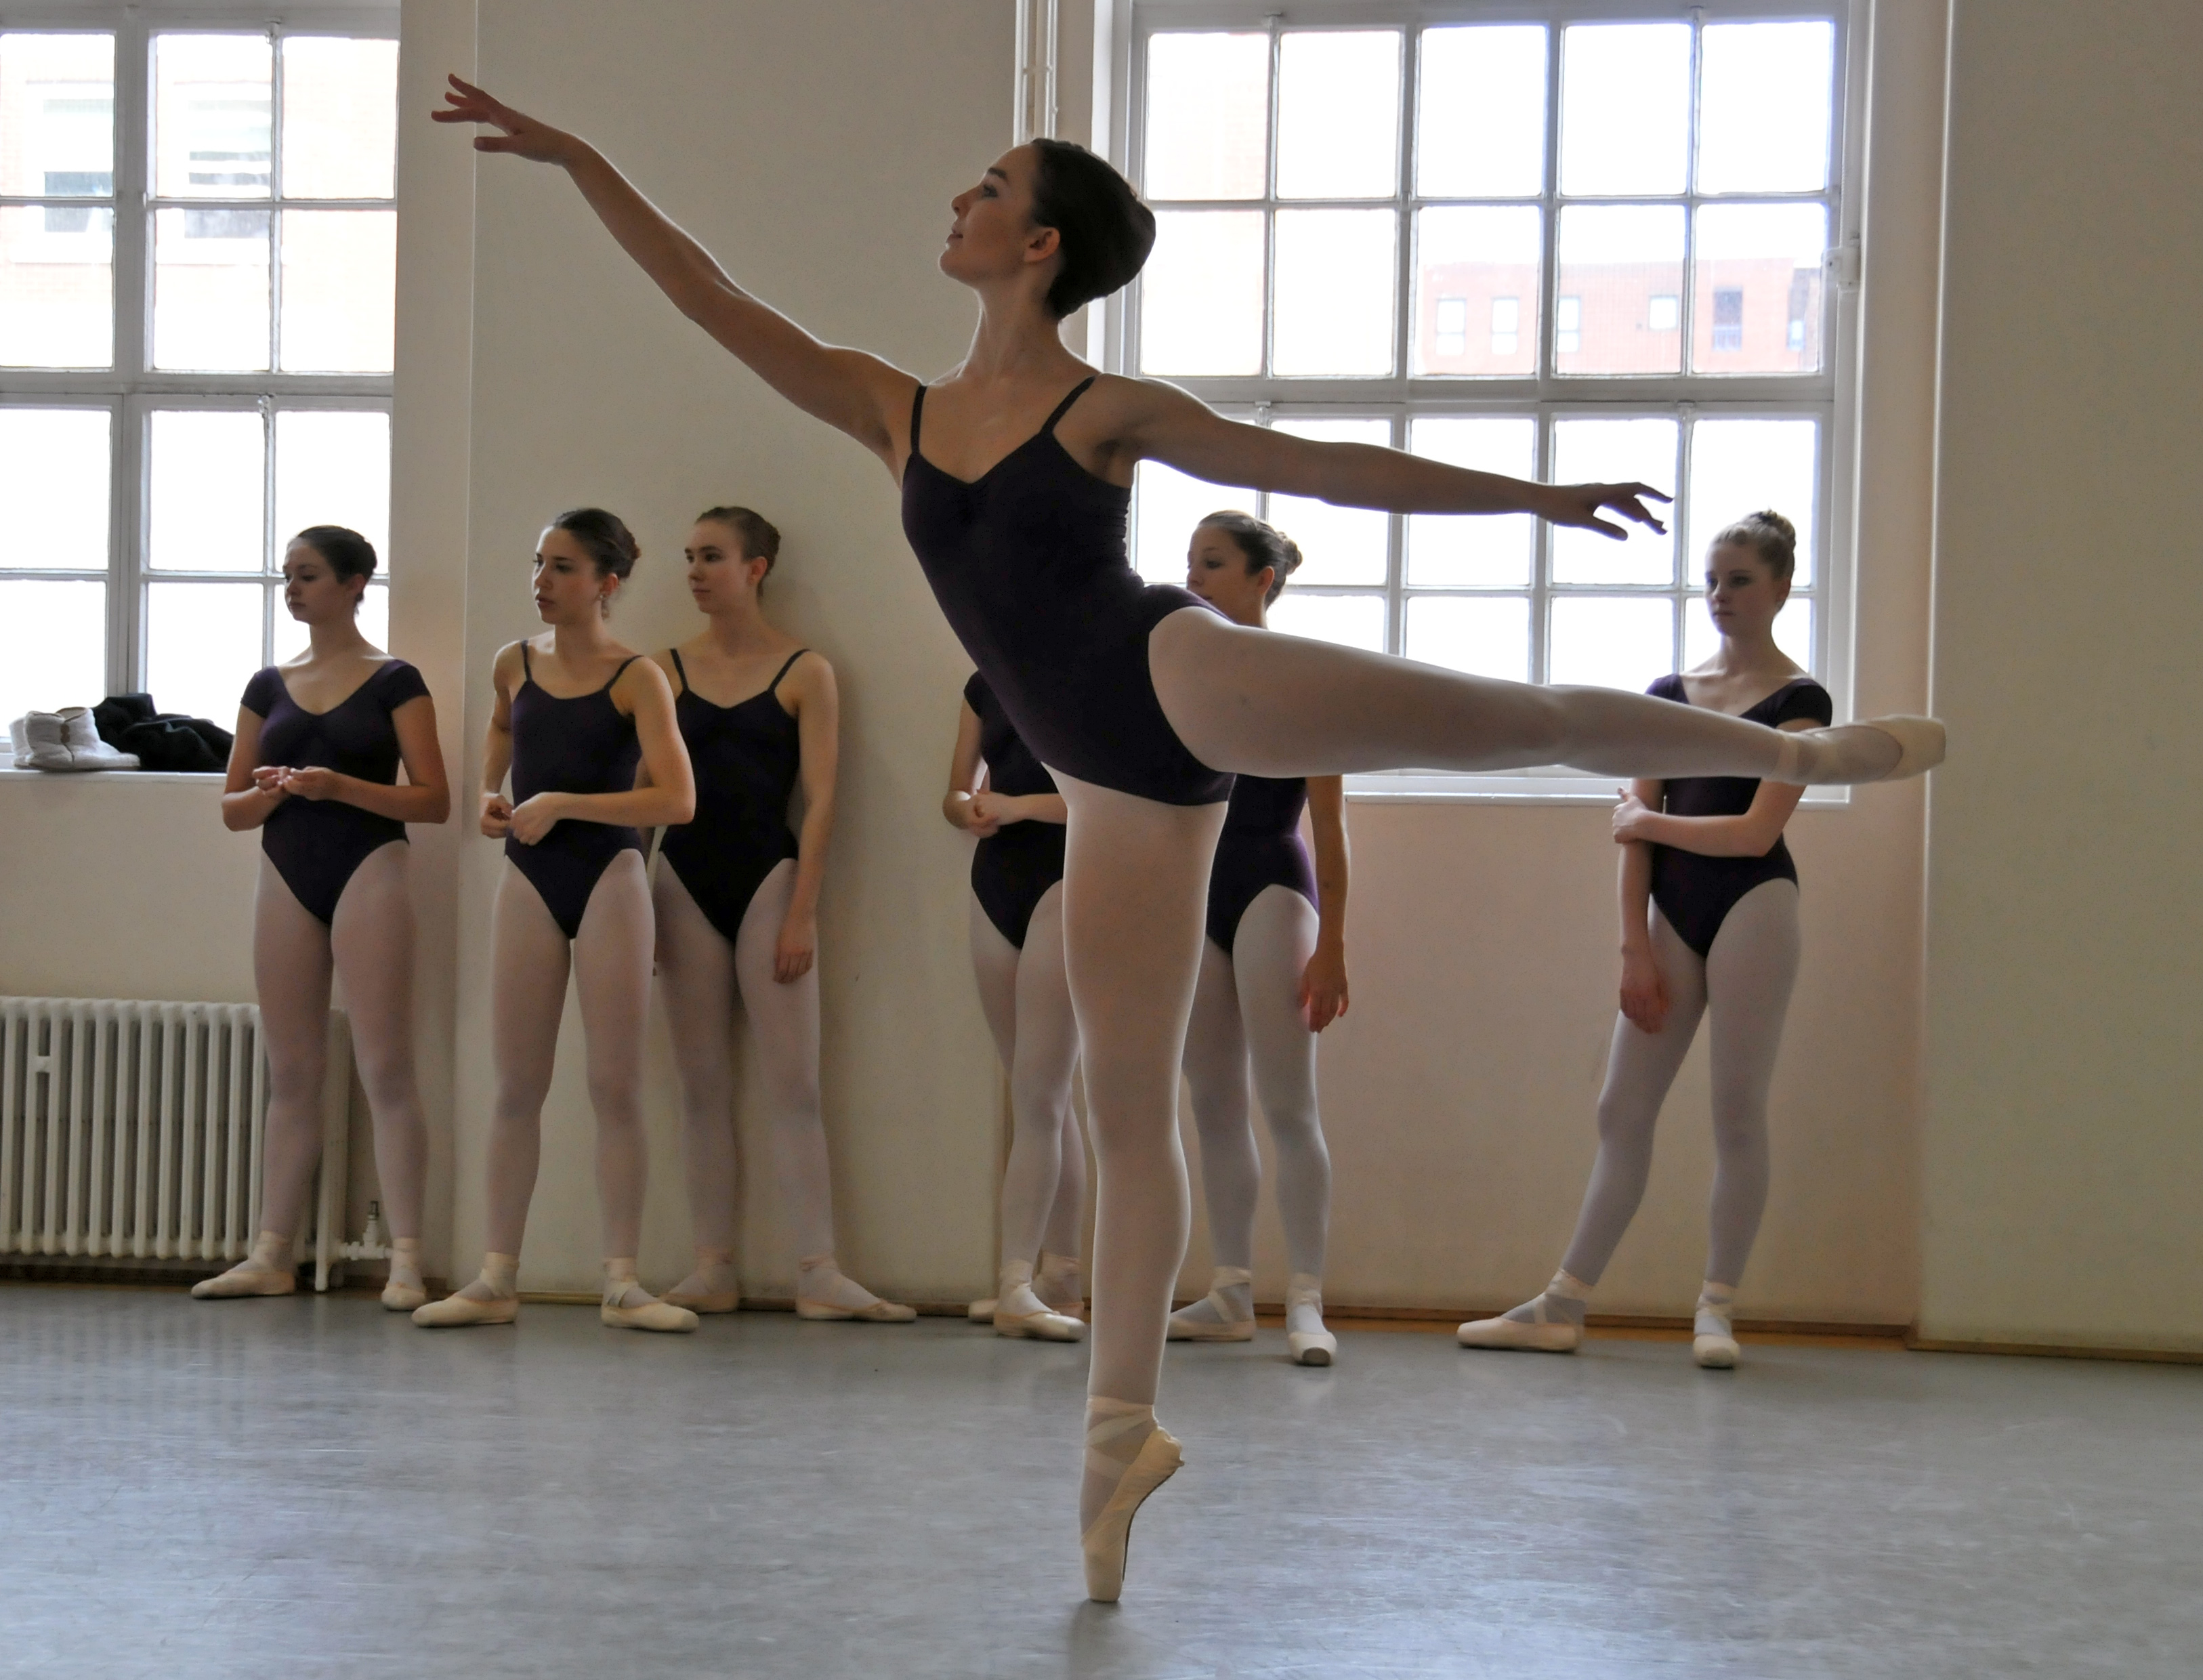 Ellie, ballet school, class, barrre, pointe